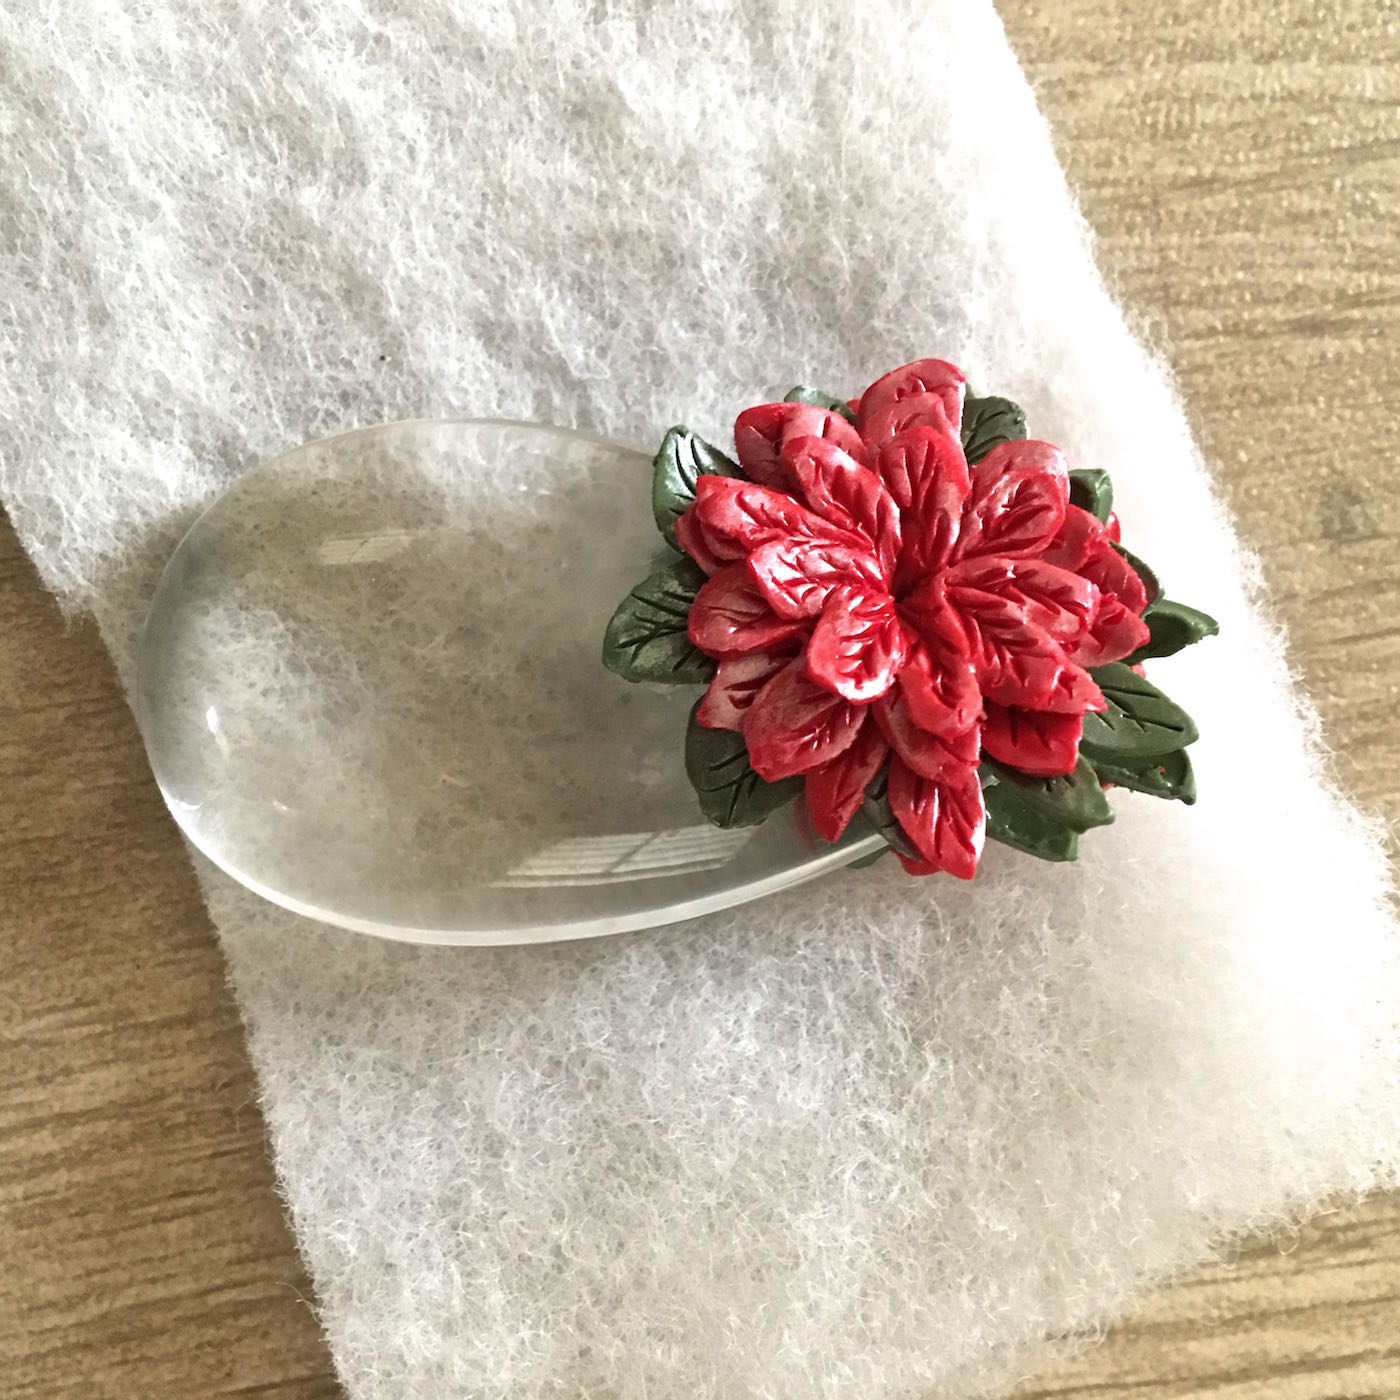 """12. Place the ornament on a soft cushioned surface like fiberfill. It will """"nest"""" the ornament and not leave a shiny finish on the clay. Bake the piece at 275 degrees for 30 minutes."""